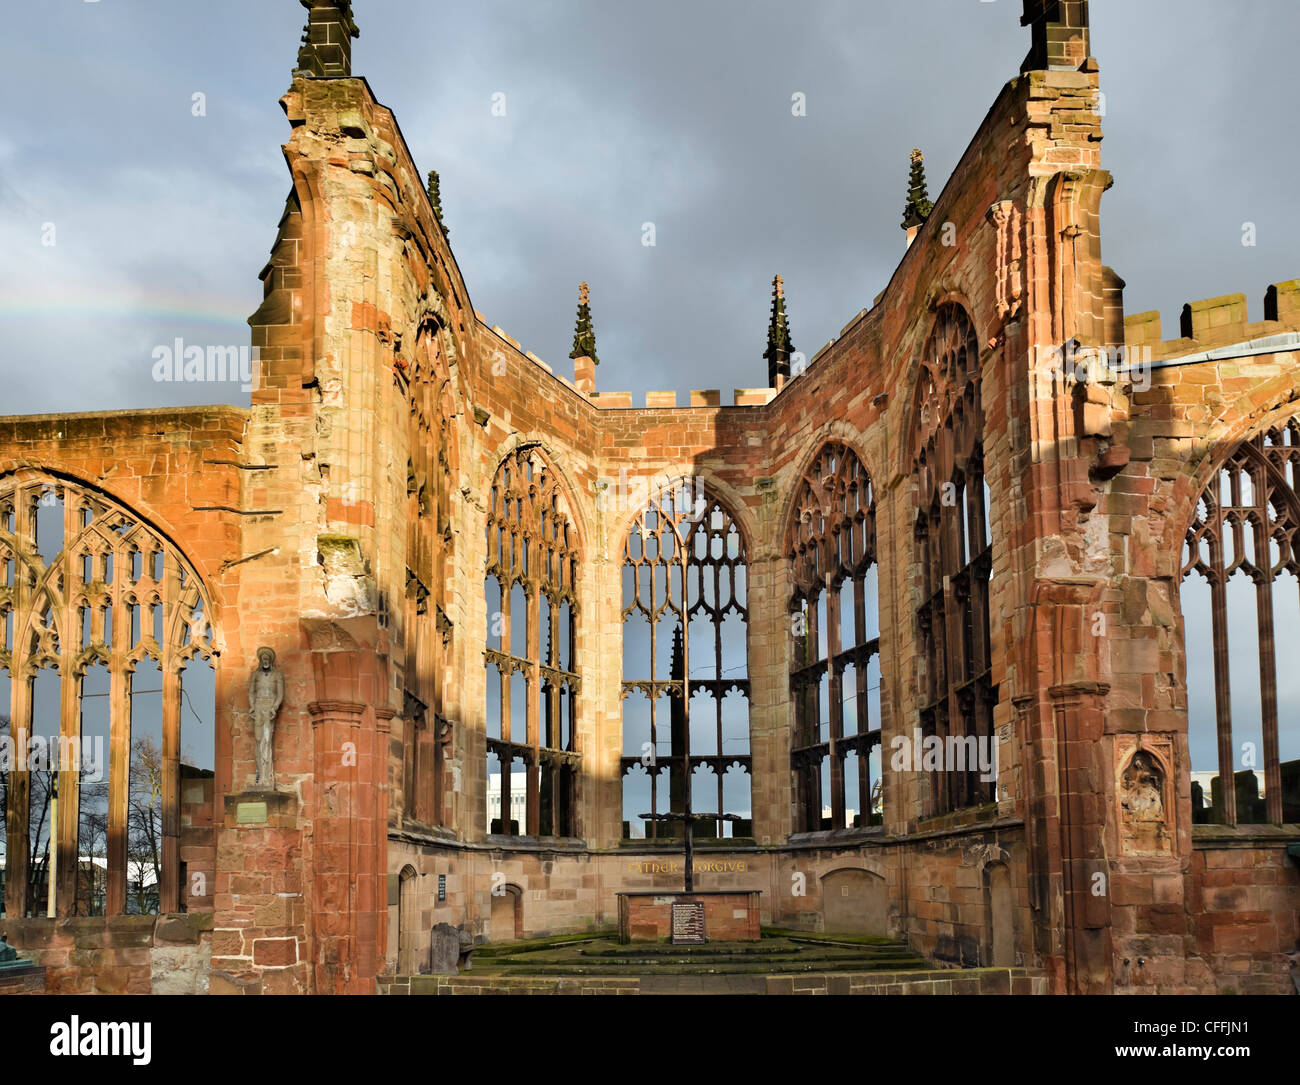 The altar of the old bombed out cathedral in late afternoon sunshine after a storm, Coventry, West Midlands, England, - Stock Image